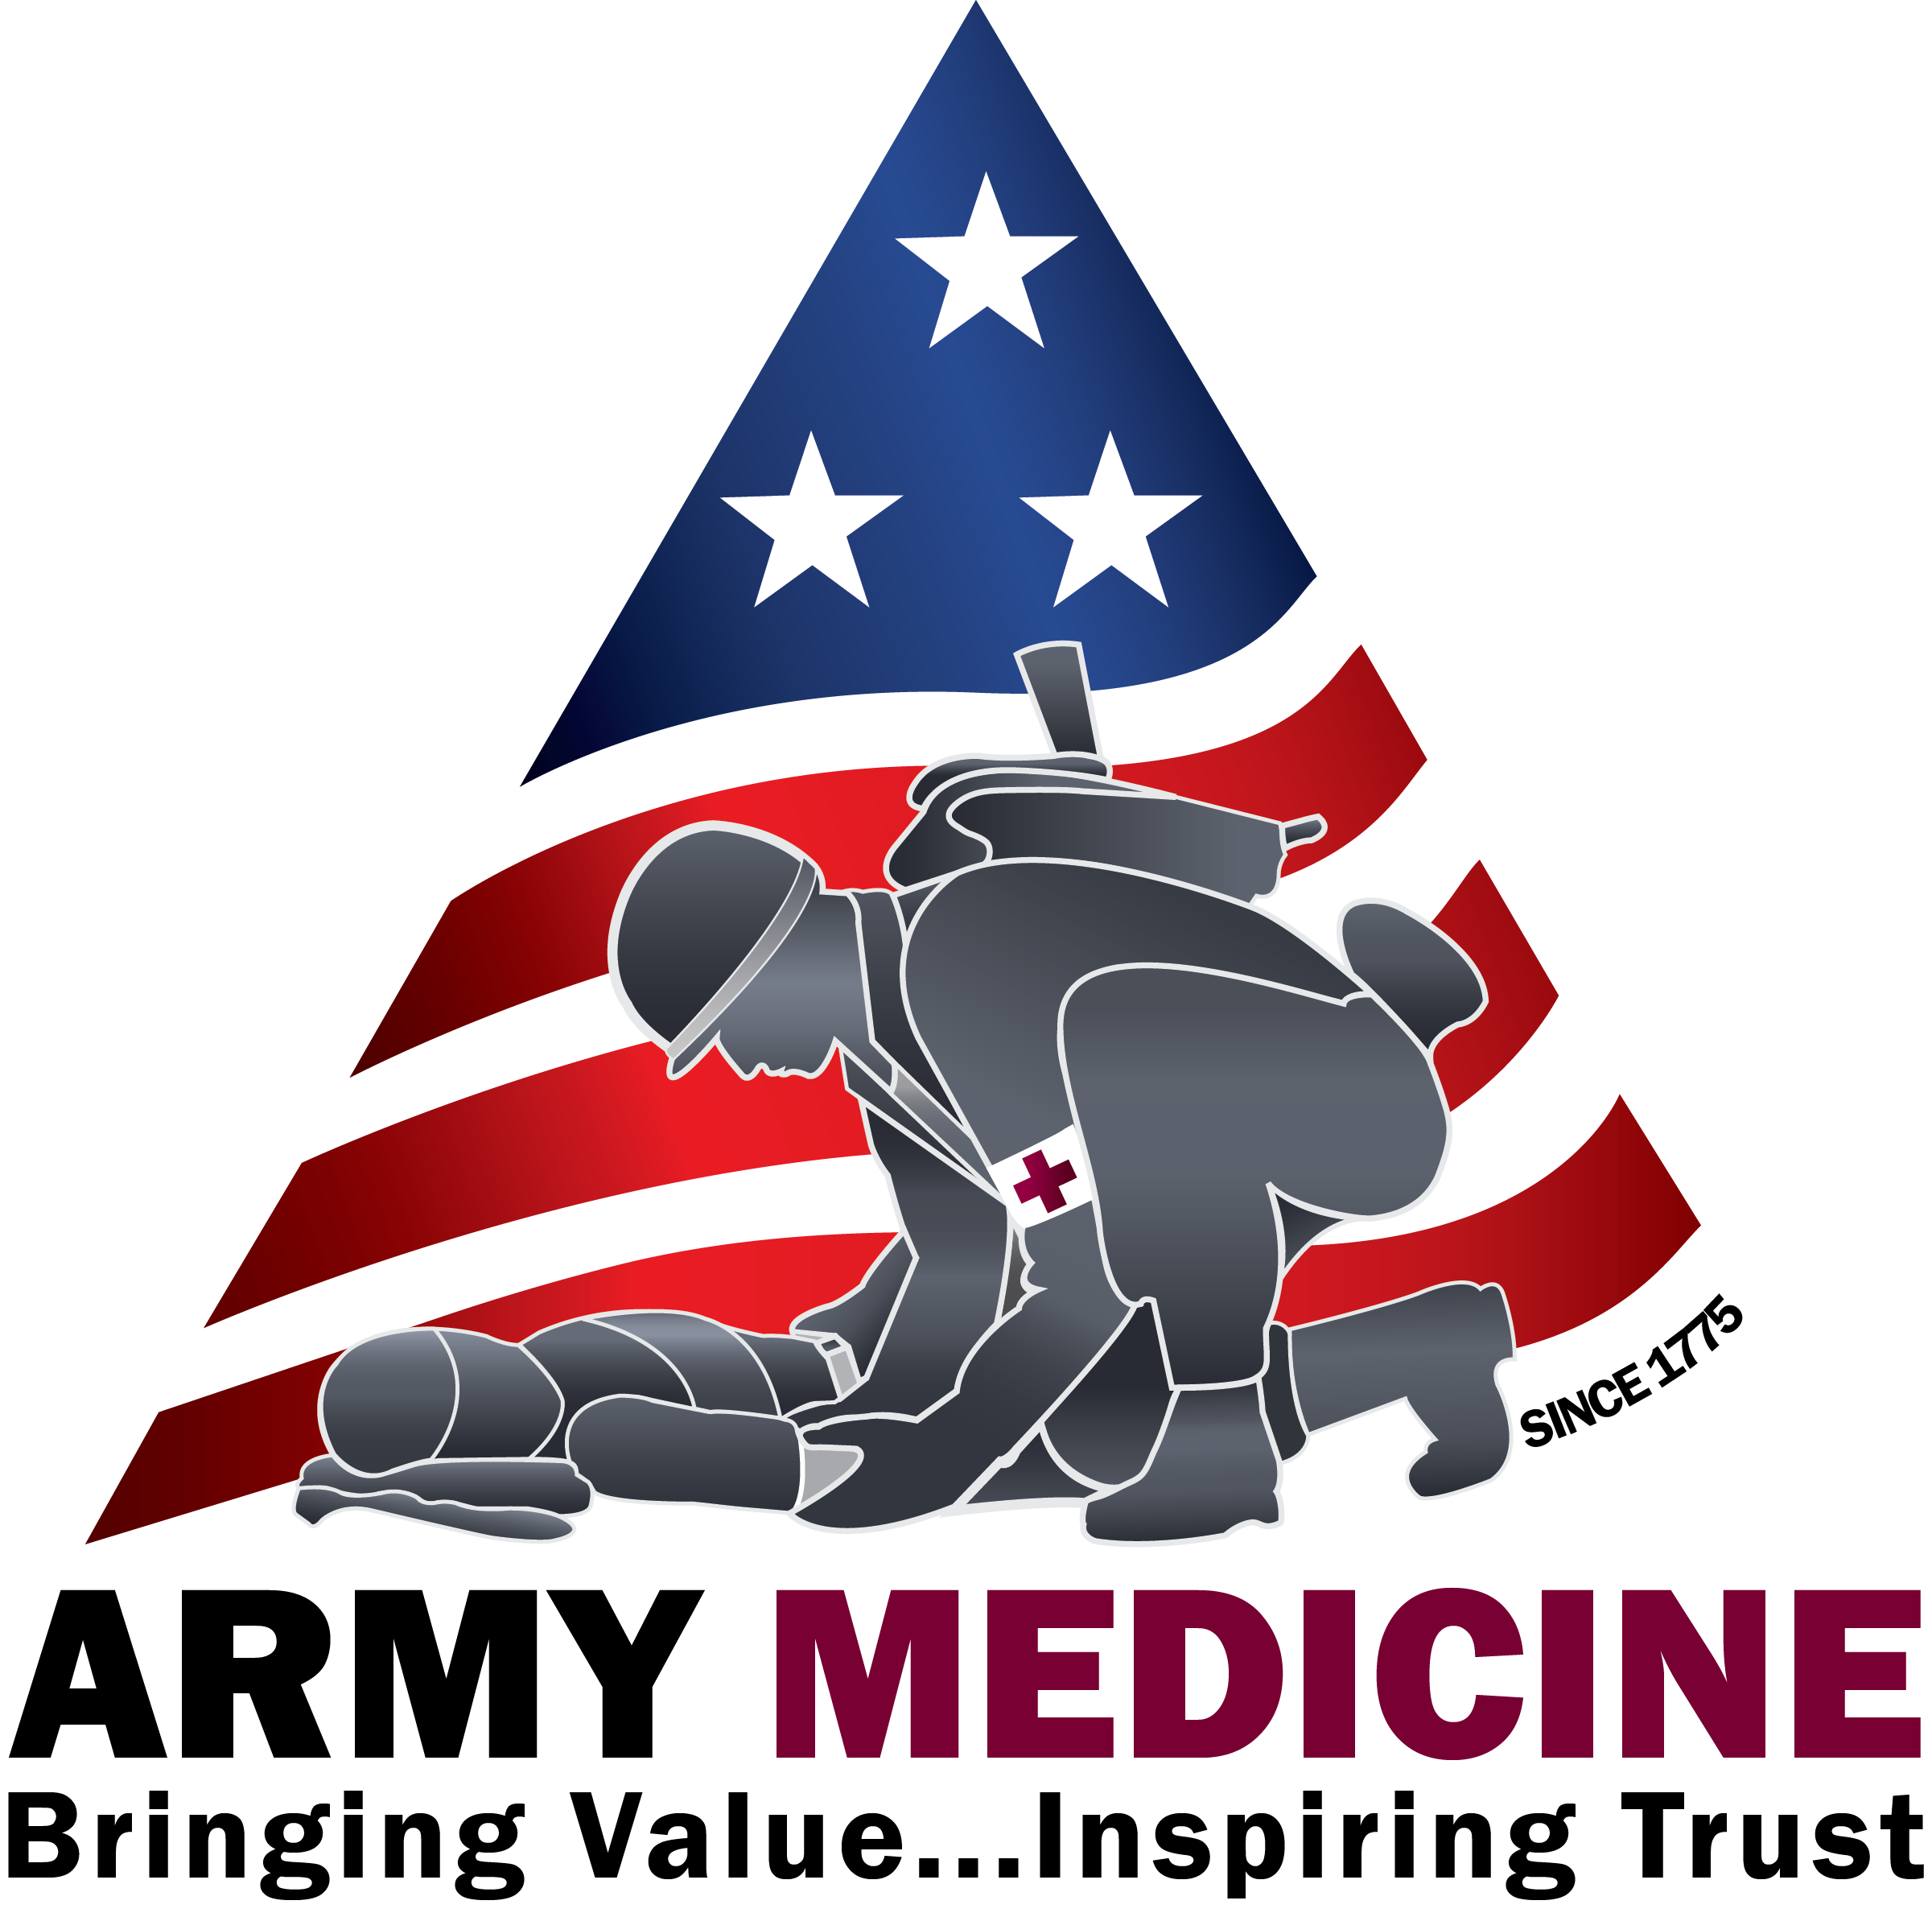 United States Army Medical Command MEDCOM